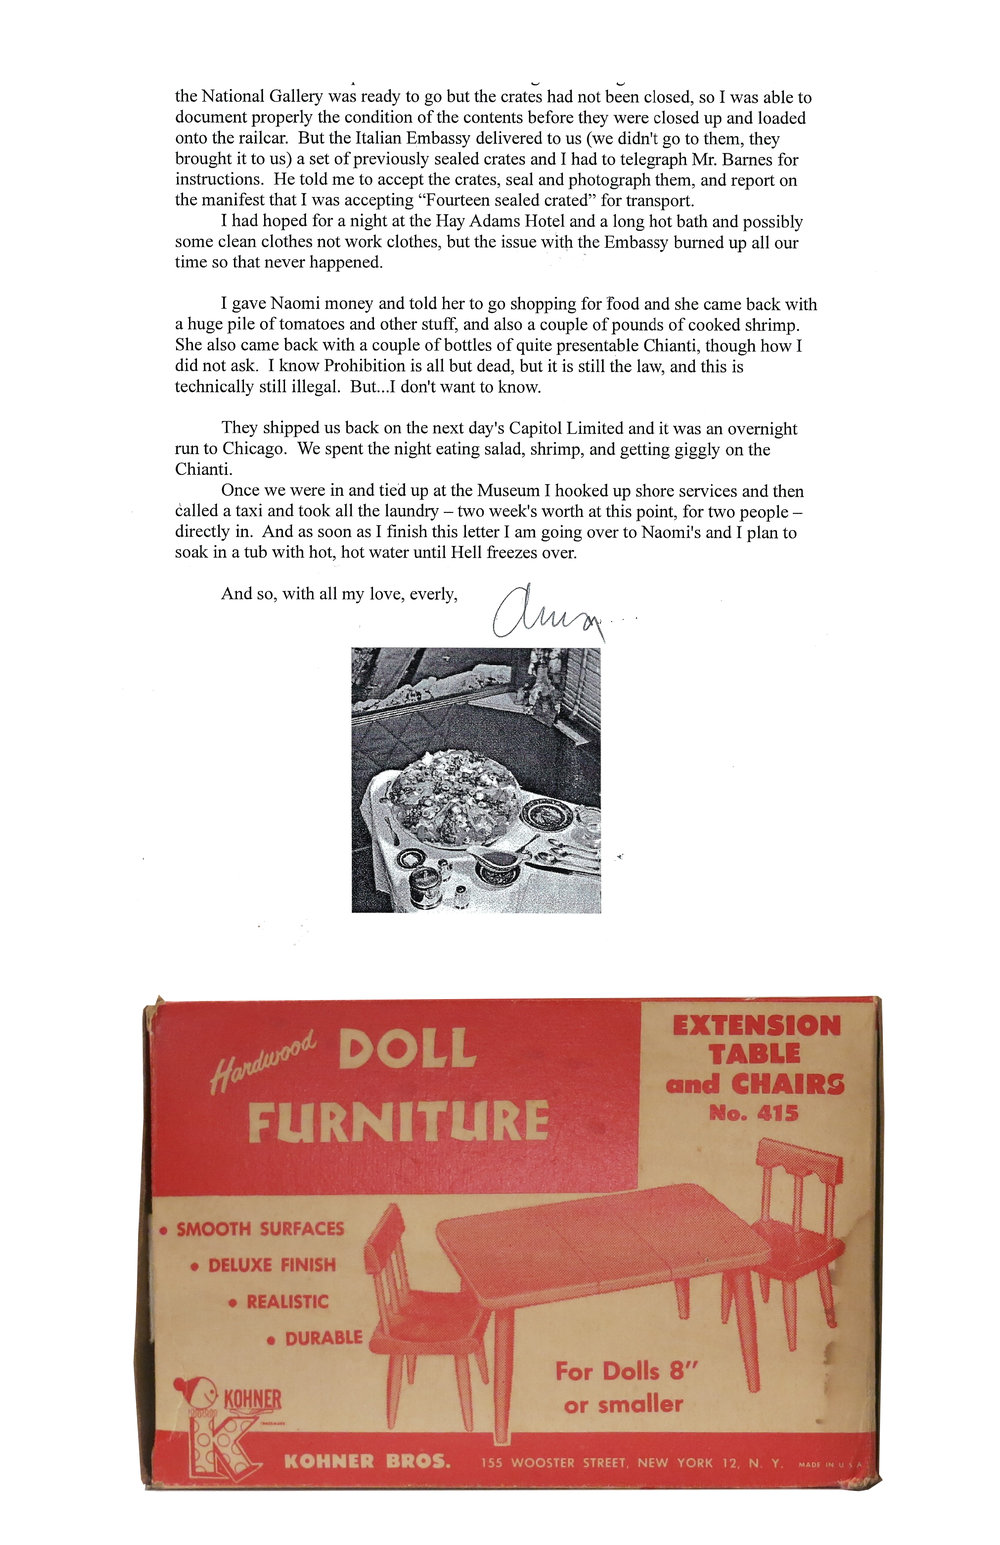 1940's era vintage doll furniture accompanied with